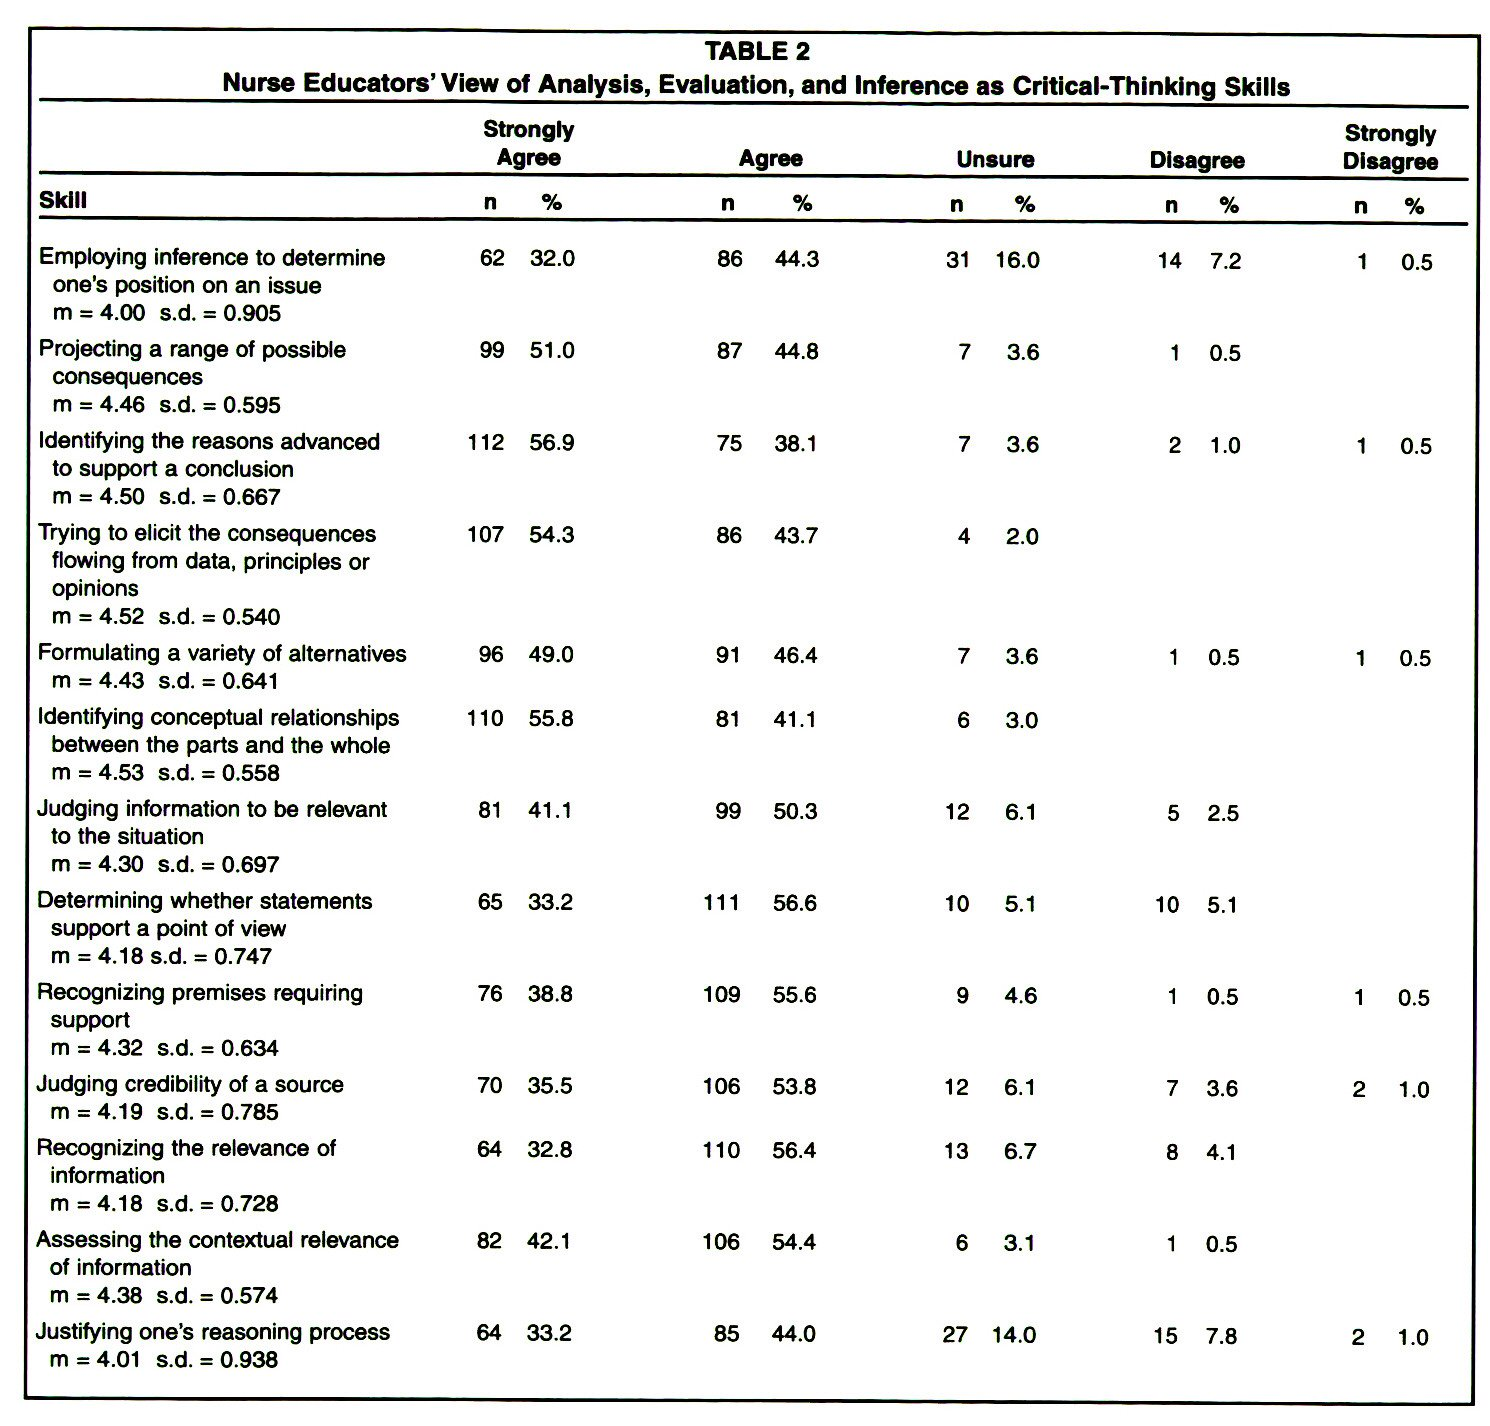 TABLE 2Nurse Educators' View of Analysis, Evaluation, and Inference as Critical-Thinking Skills